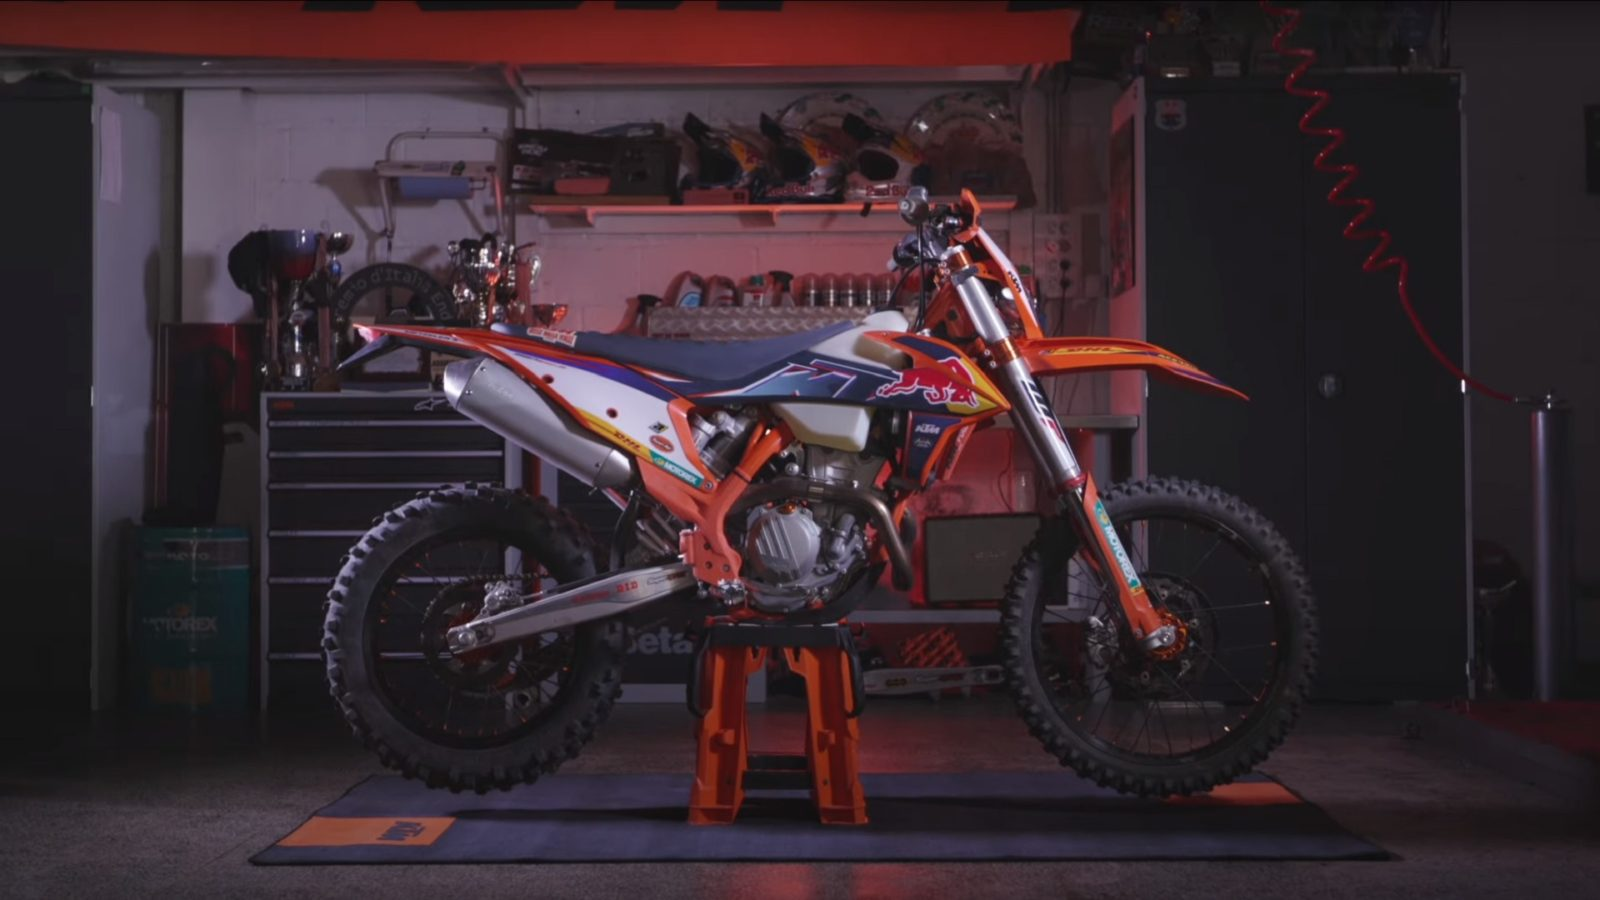 ktm-announces-2022-350-exc-f-with-factory-racing-treatment,-is-ready-to-tackle-any-terrain